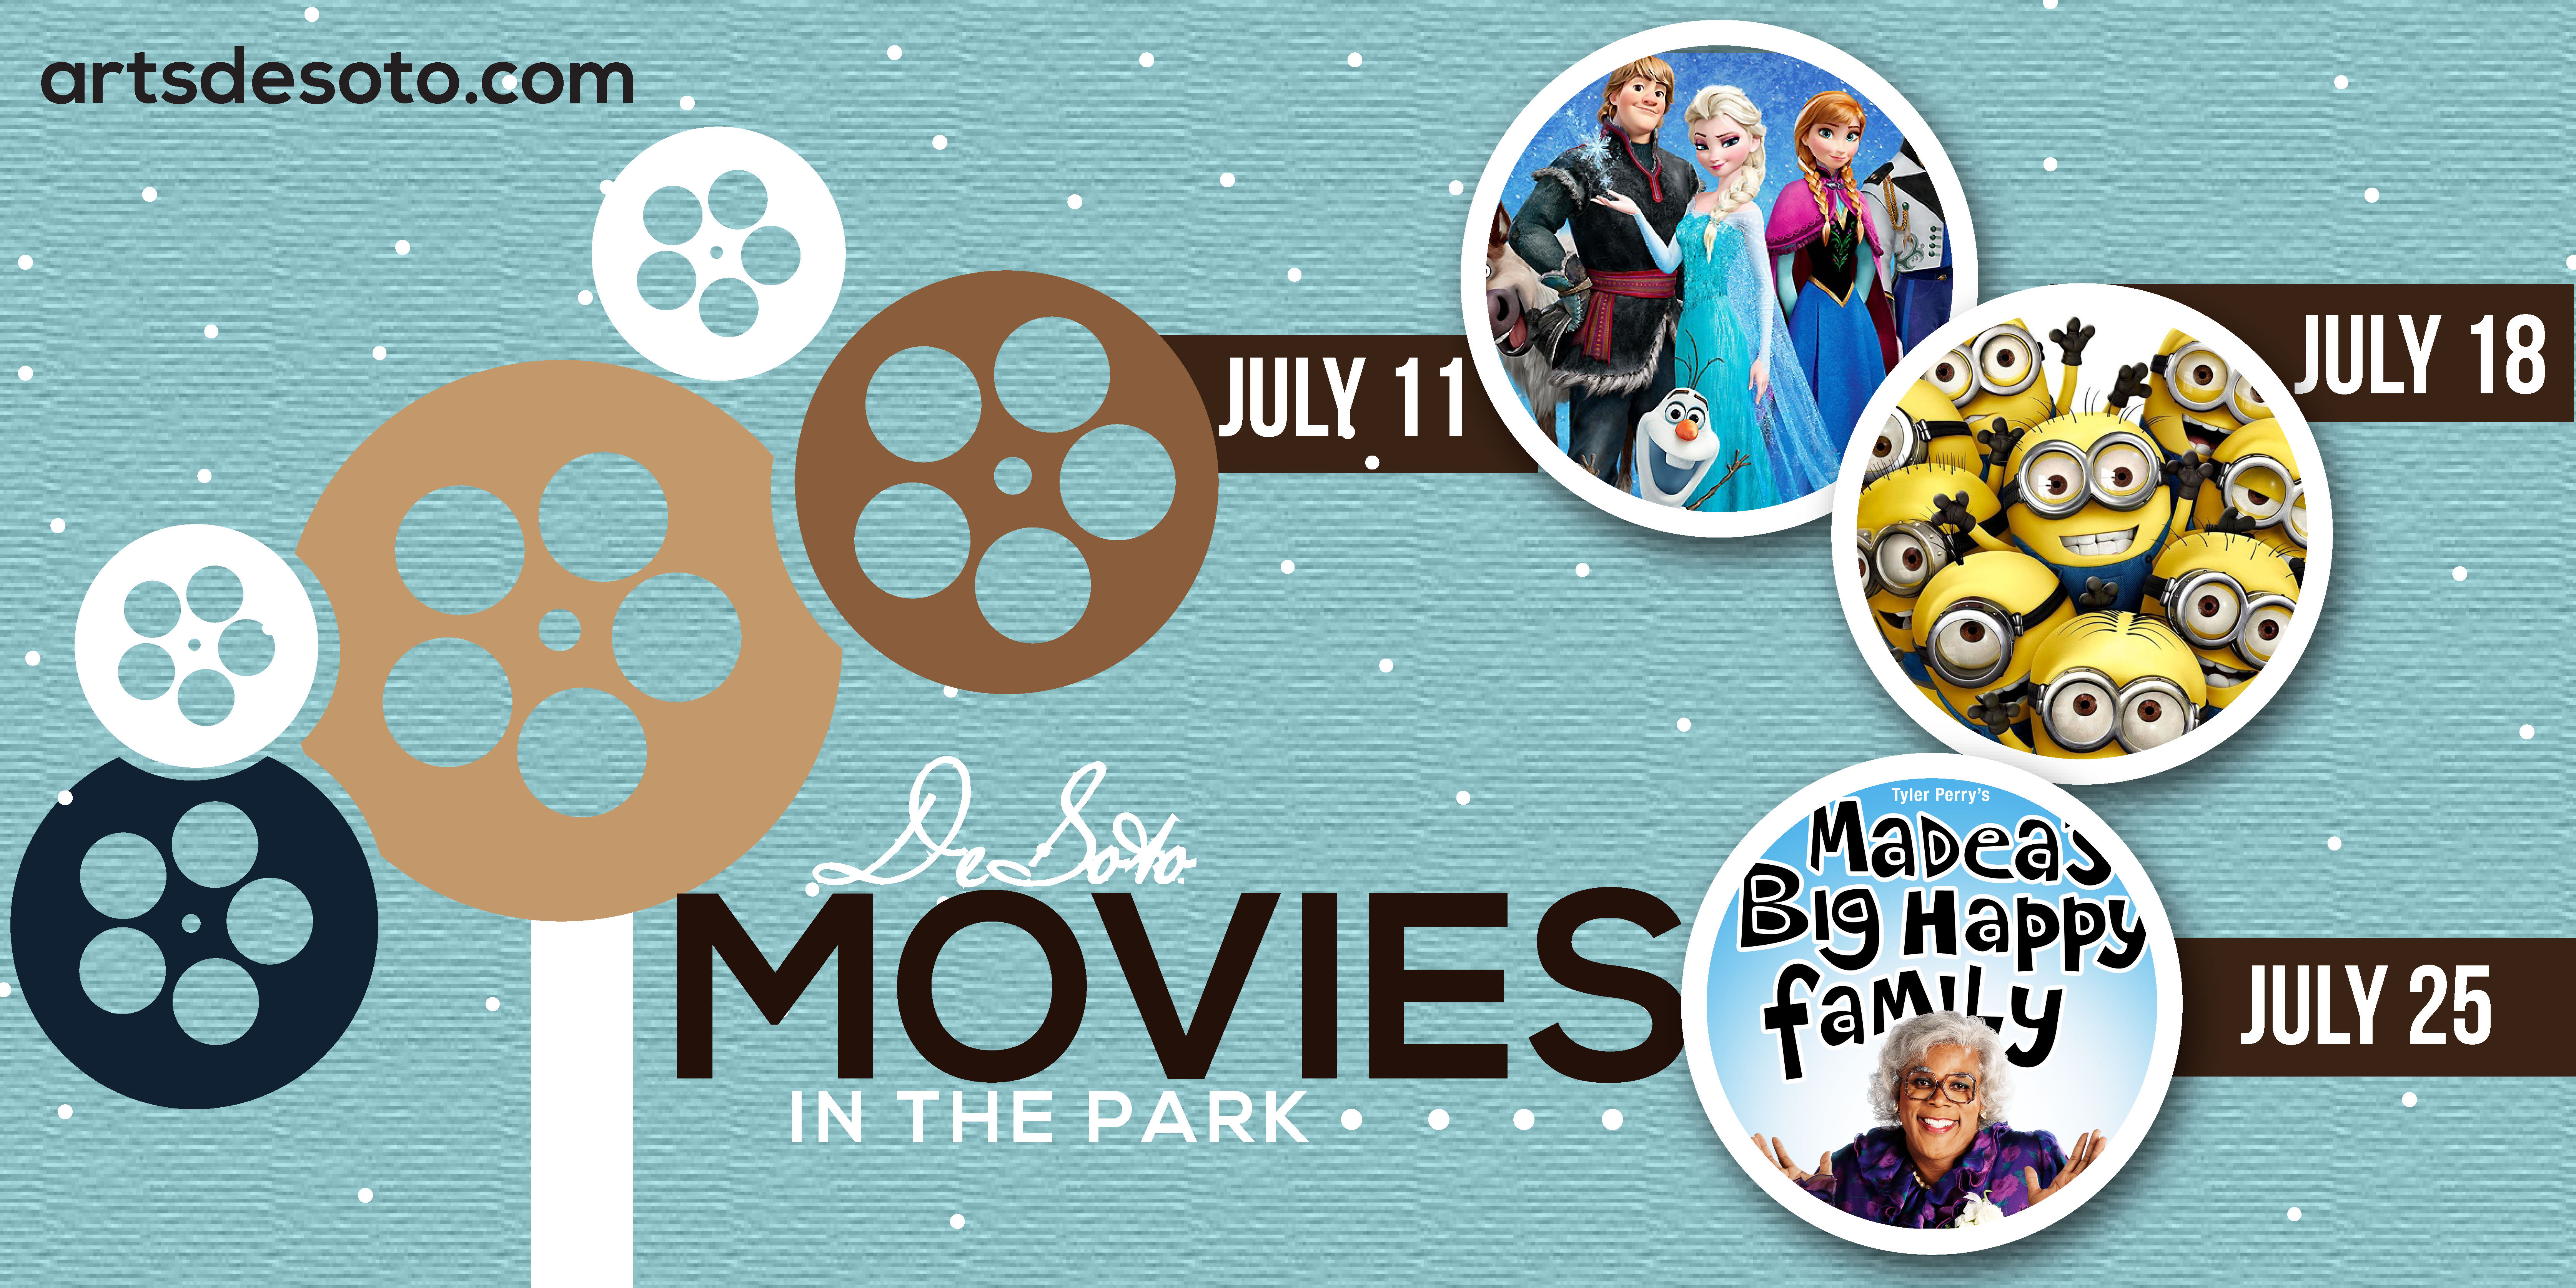 Movies in the Park MM Billboard.jpg